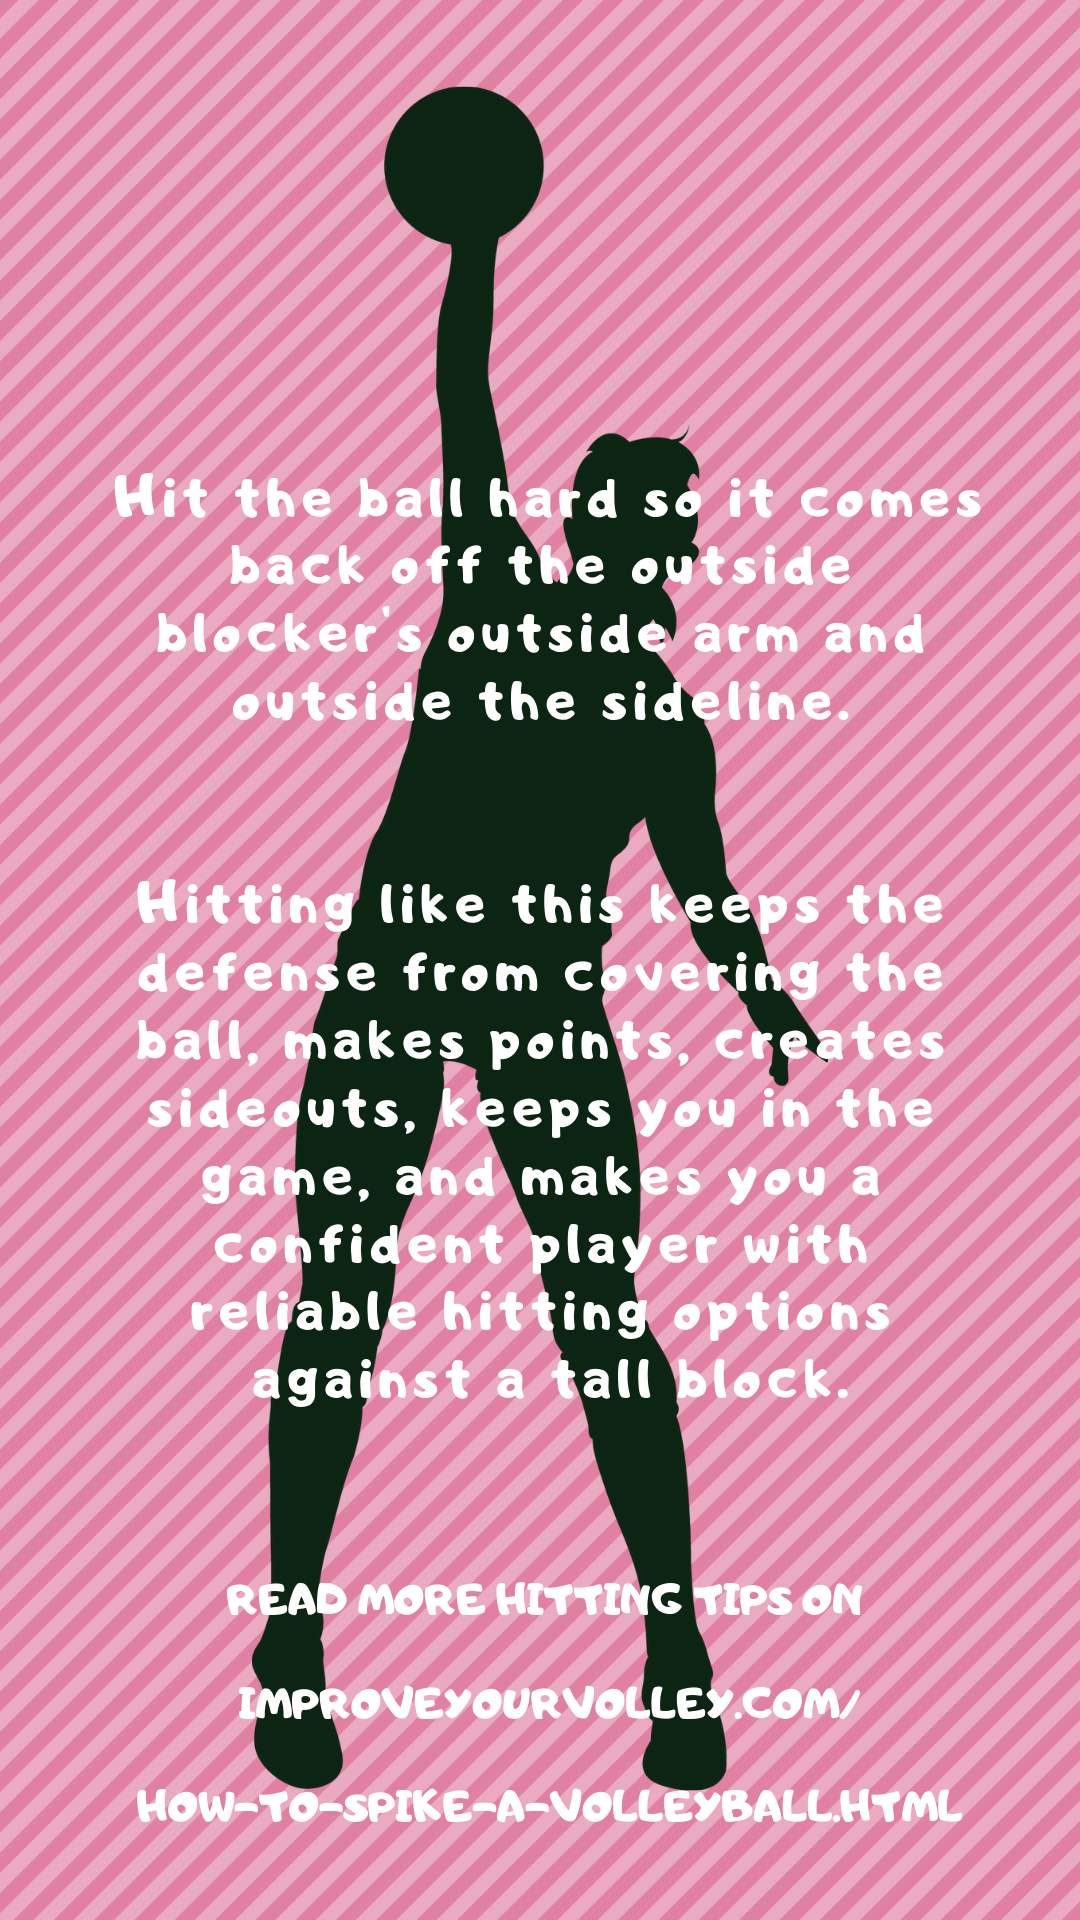 Hit the ball hard so it comes back off her arm and outside the sideline.